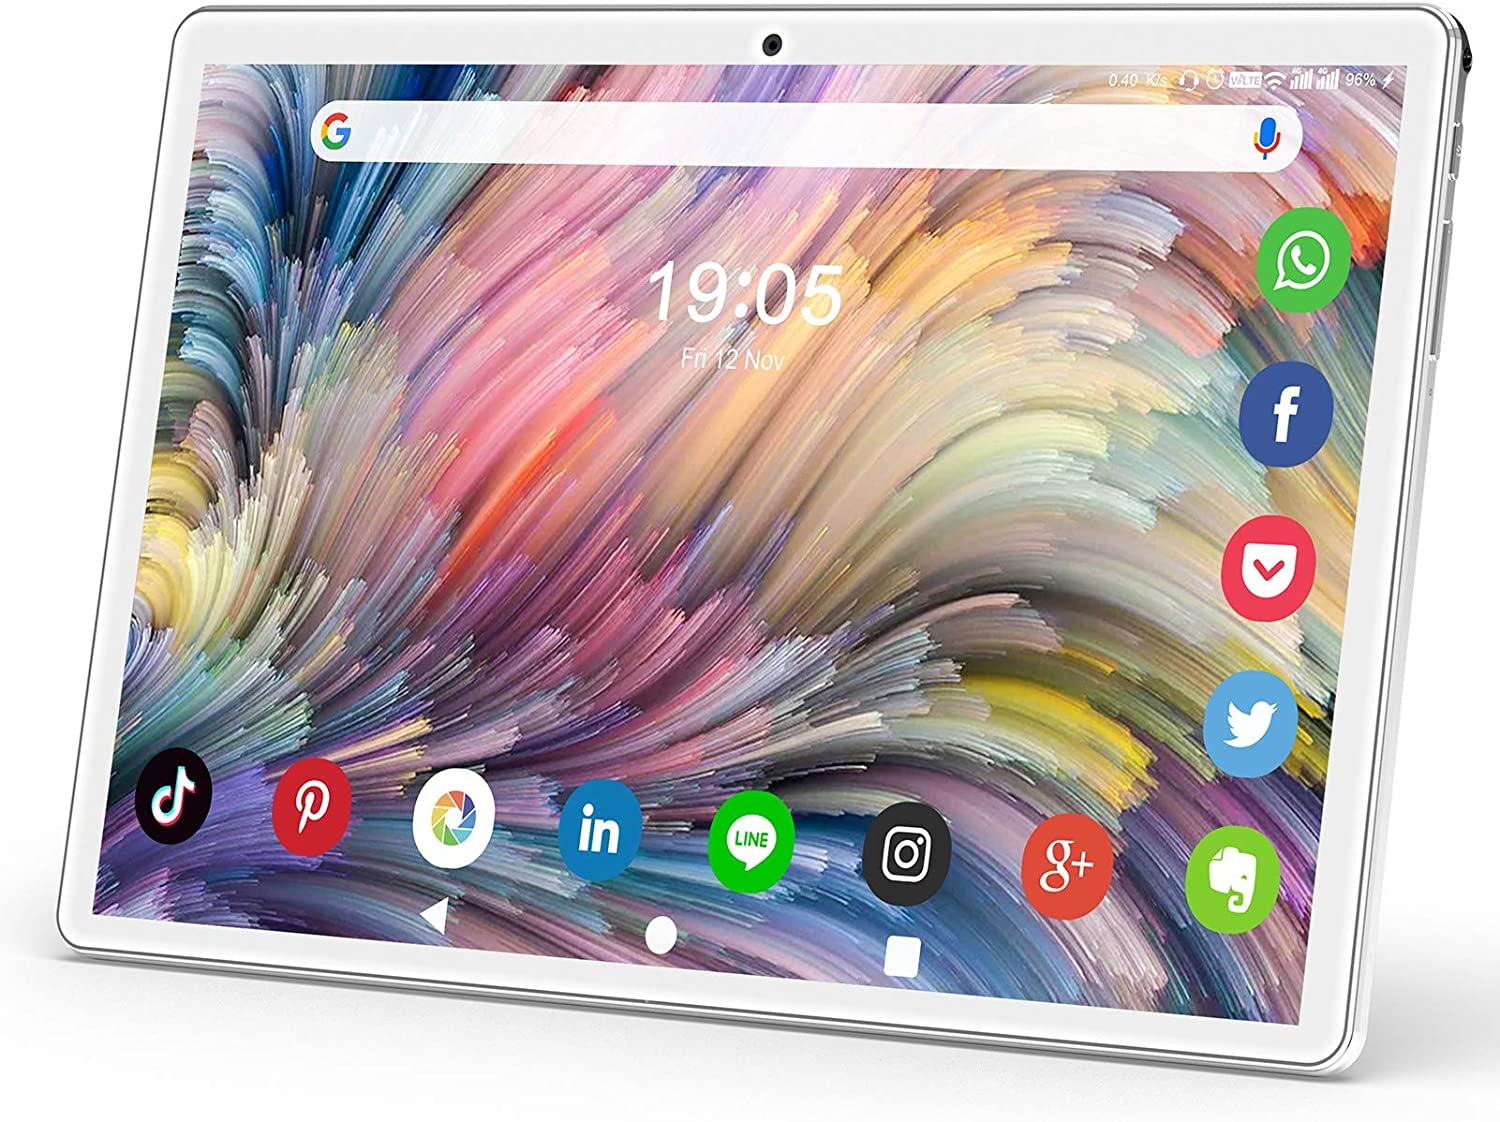 Tablet 10.1 Inch, Android 9.0 Pie Tablet PC with 32GB ROM/128GB Expand, Dual Sim Card 2MP+ 5MP Camera, WiFi, Bluetooth, GPS, Quad Core, IPS HD Display, Google Certified Tablet【2020 Newest Silver】